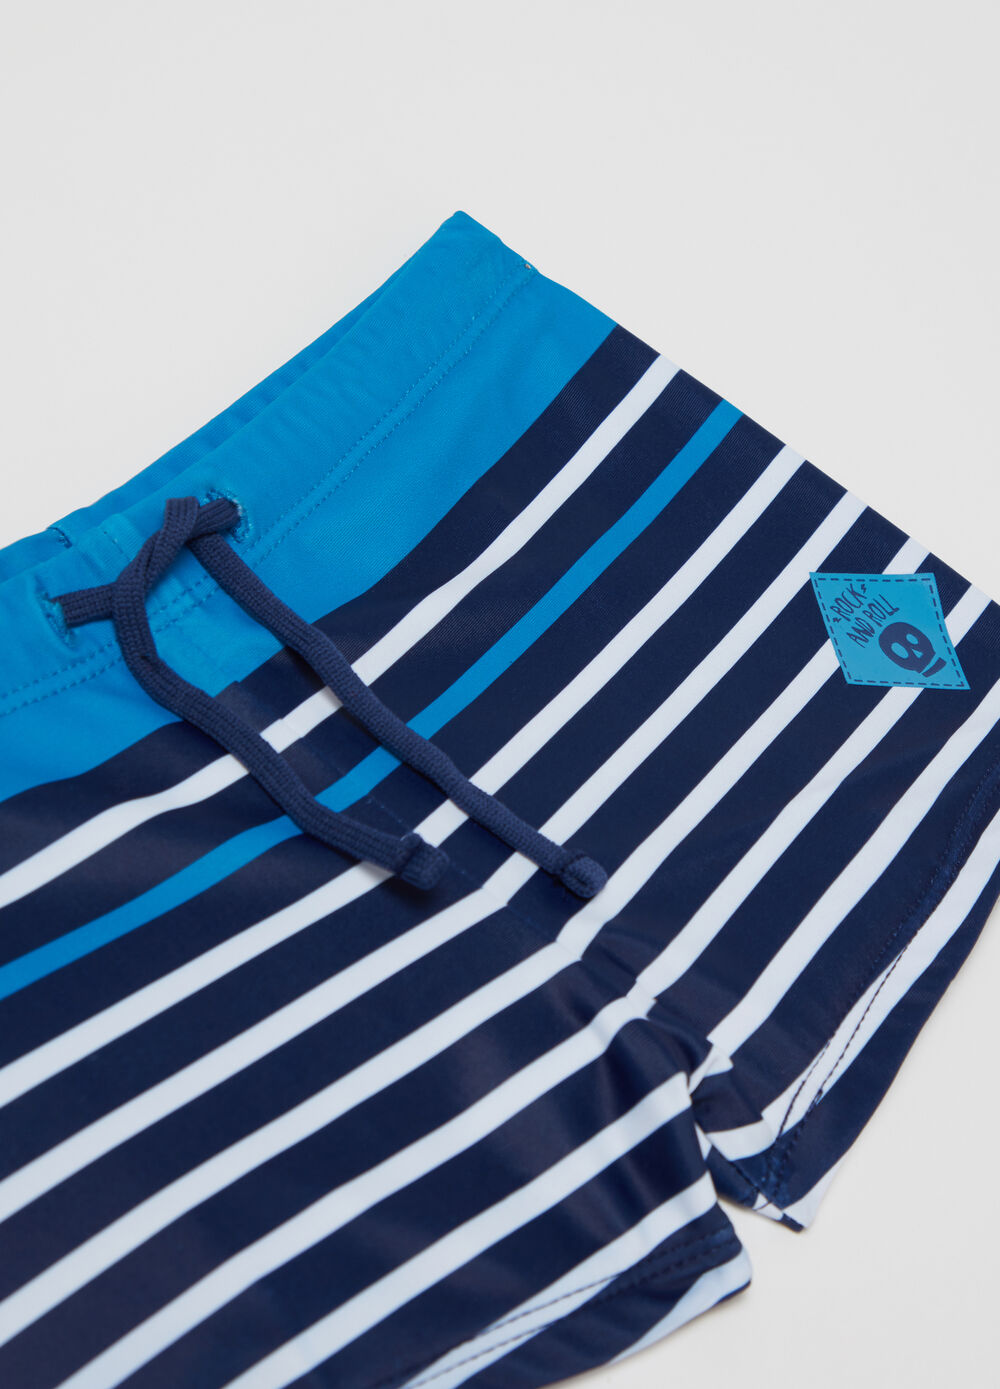 Swim trunks with skull print and striped pattern